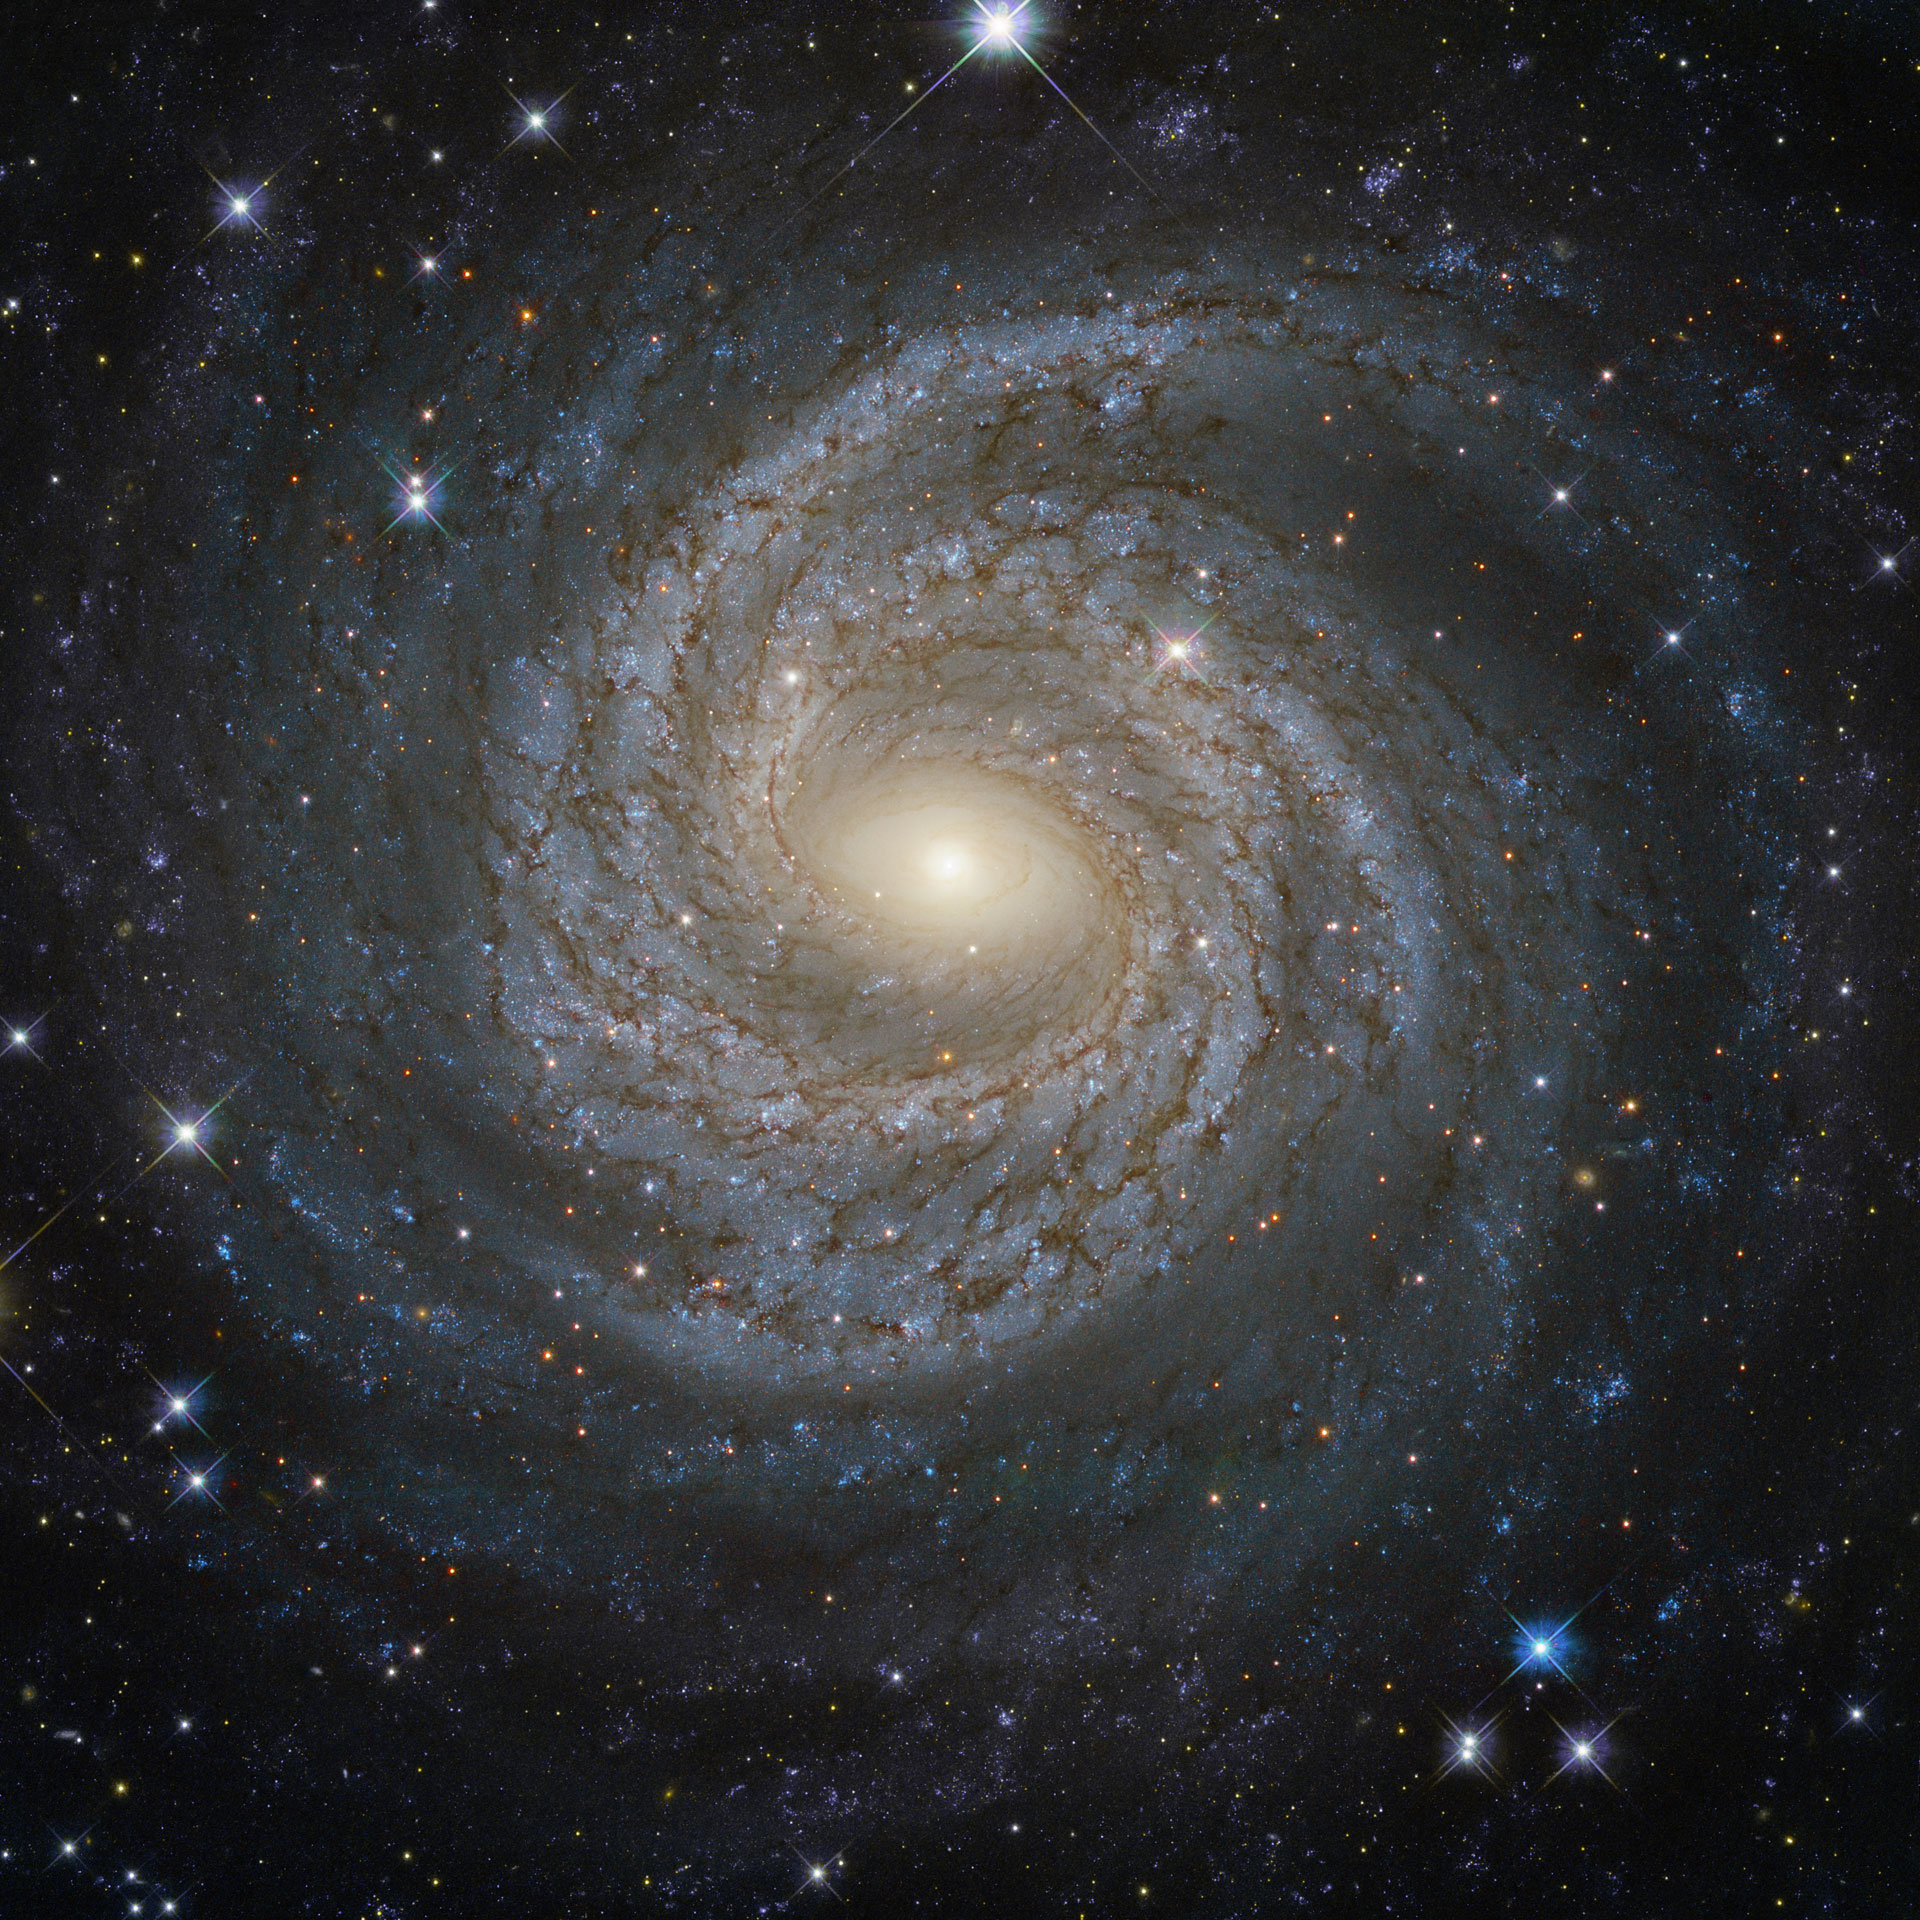 Hubble Image of the Week - Spiral Galaxy NGC 6814